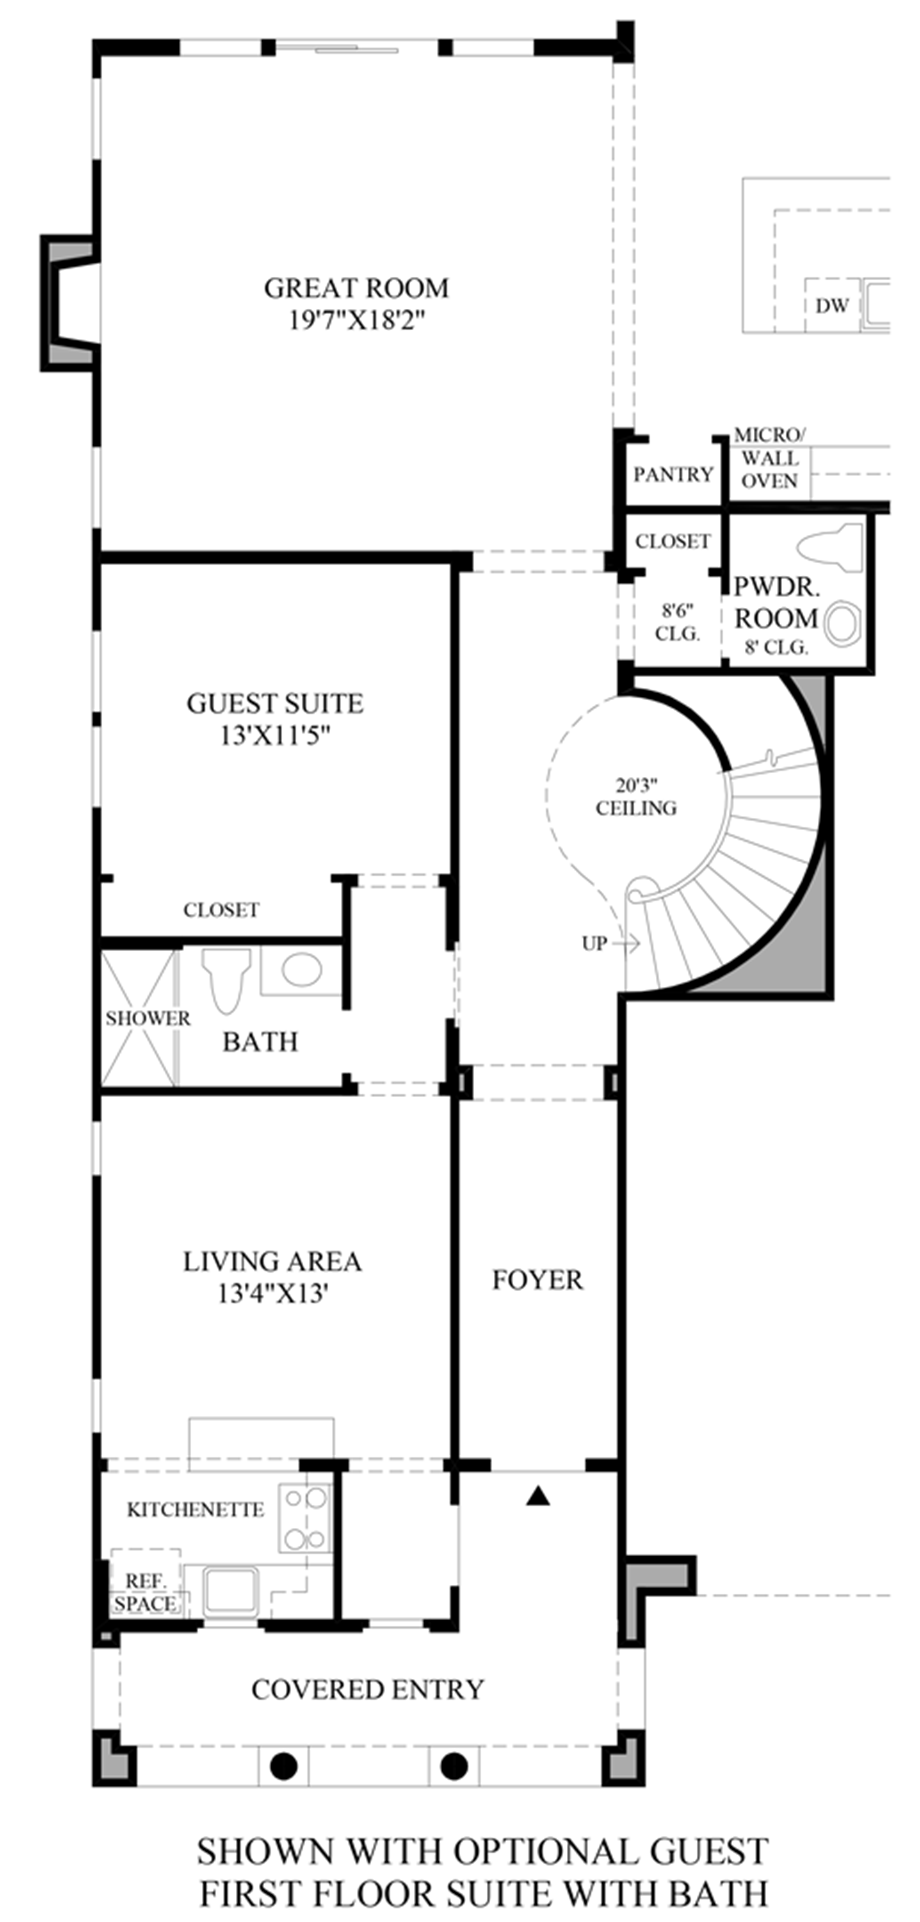 Optional Guest 1st Floor Suite with Bath Floor Plan